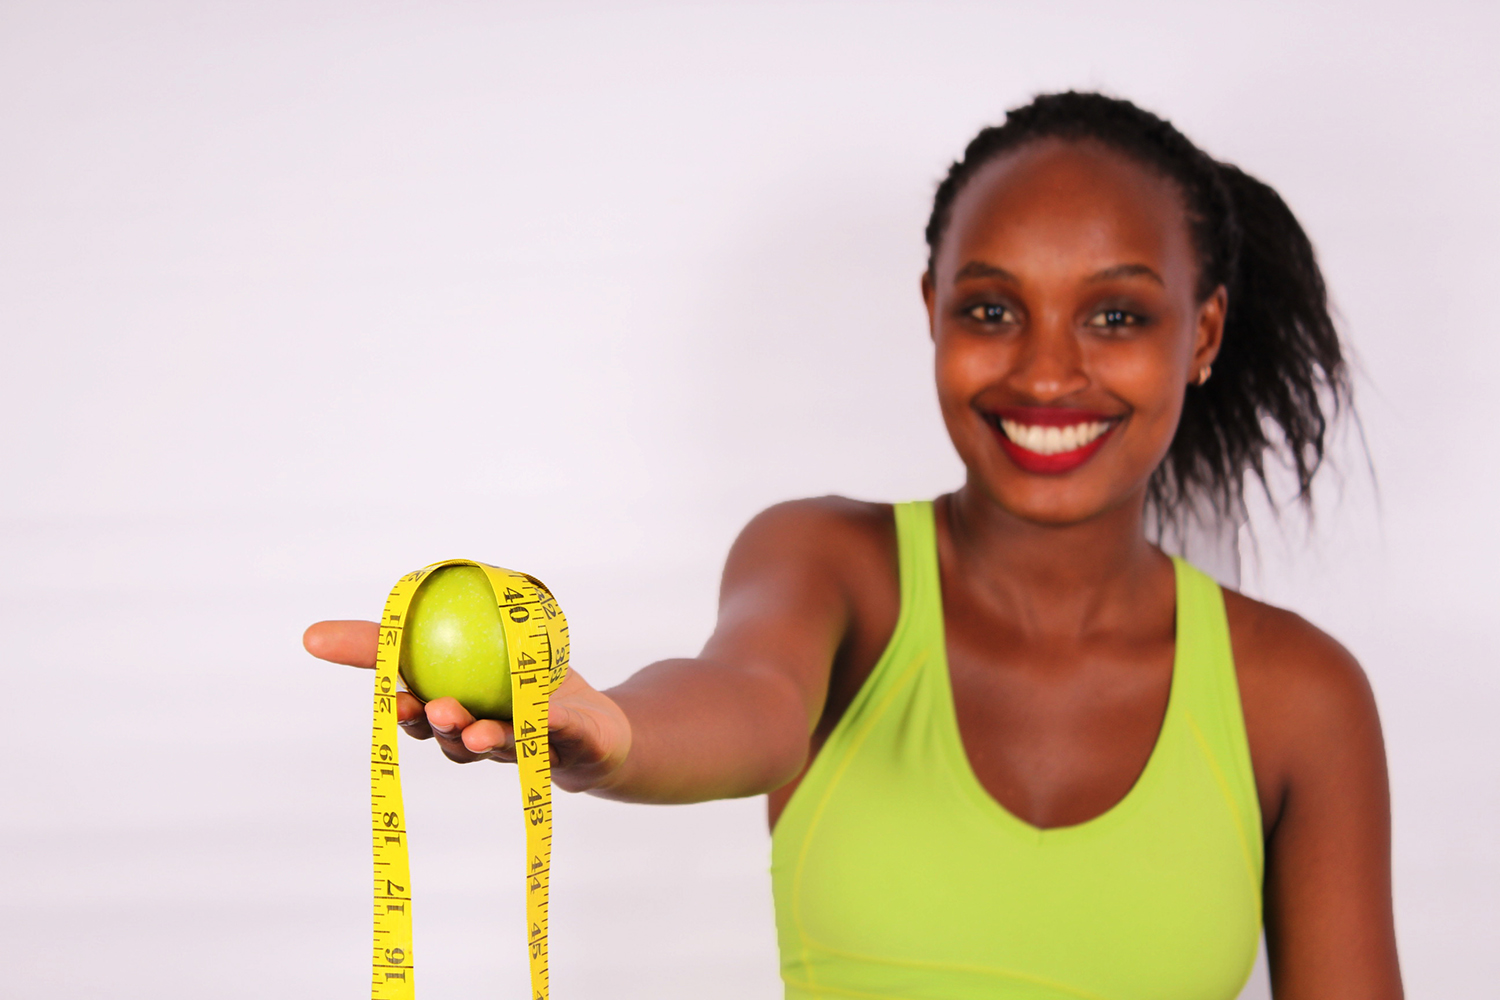 Young woman holding apple wrapped with tape measure